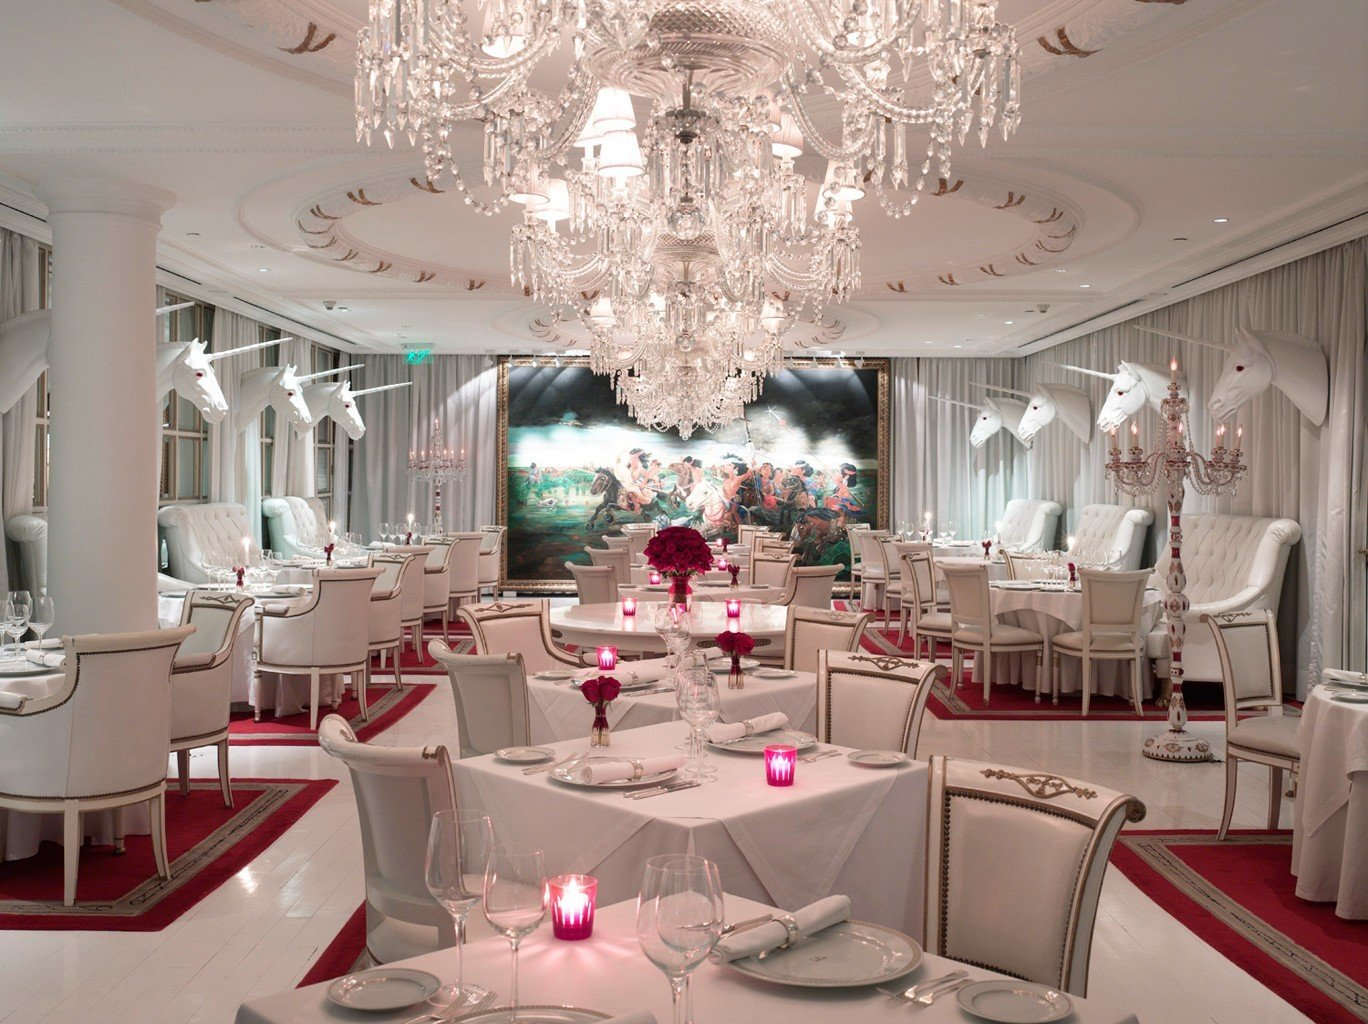 Hotels indoor function hall room meal ceiling centrepiece dining room wedding wedding reception quinceañera ceremony Party ballroom banquet interior design floristry estate restaurant furniture dining table cluttered several